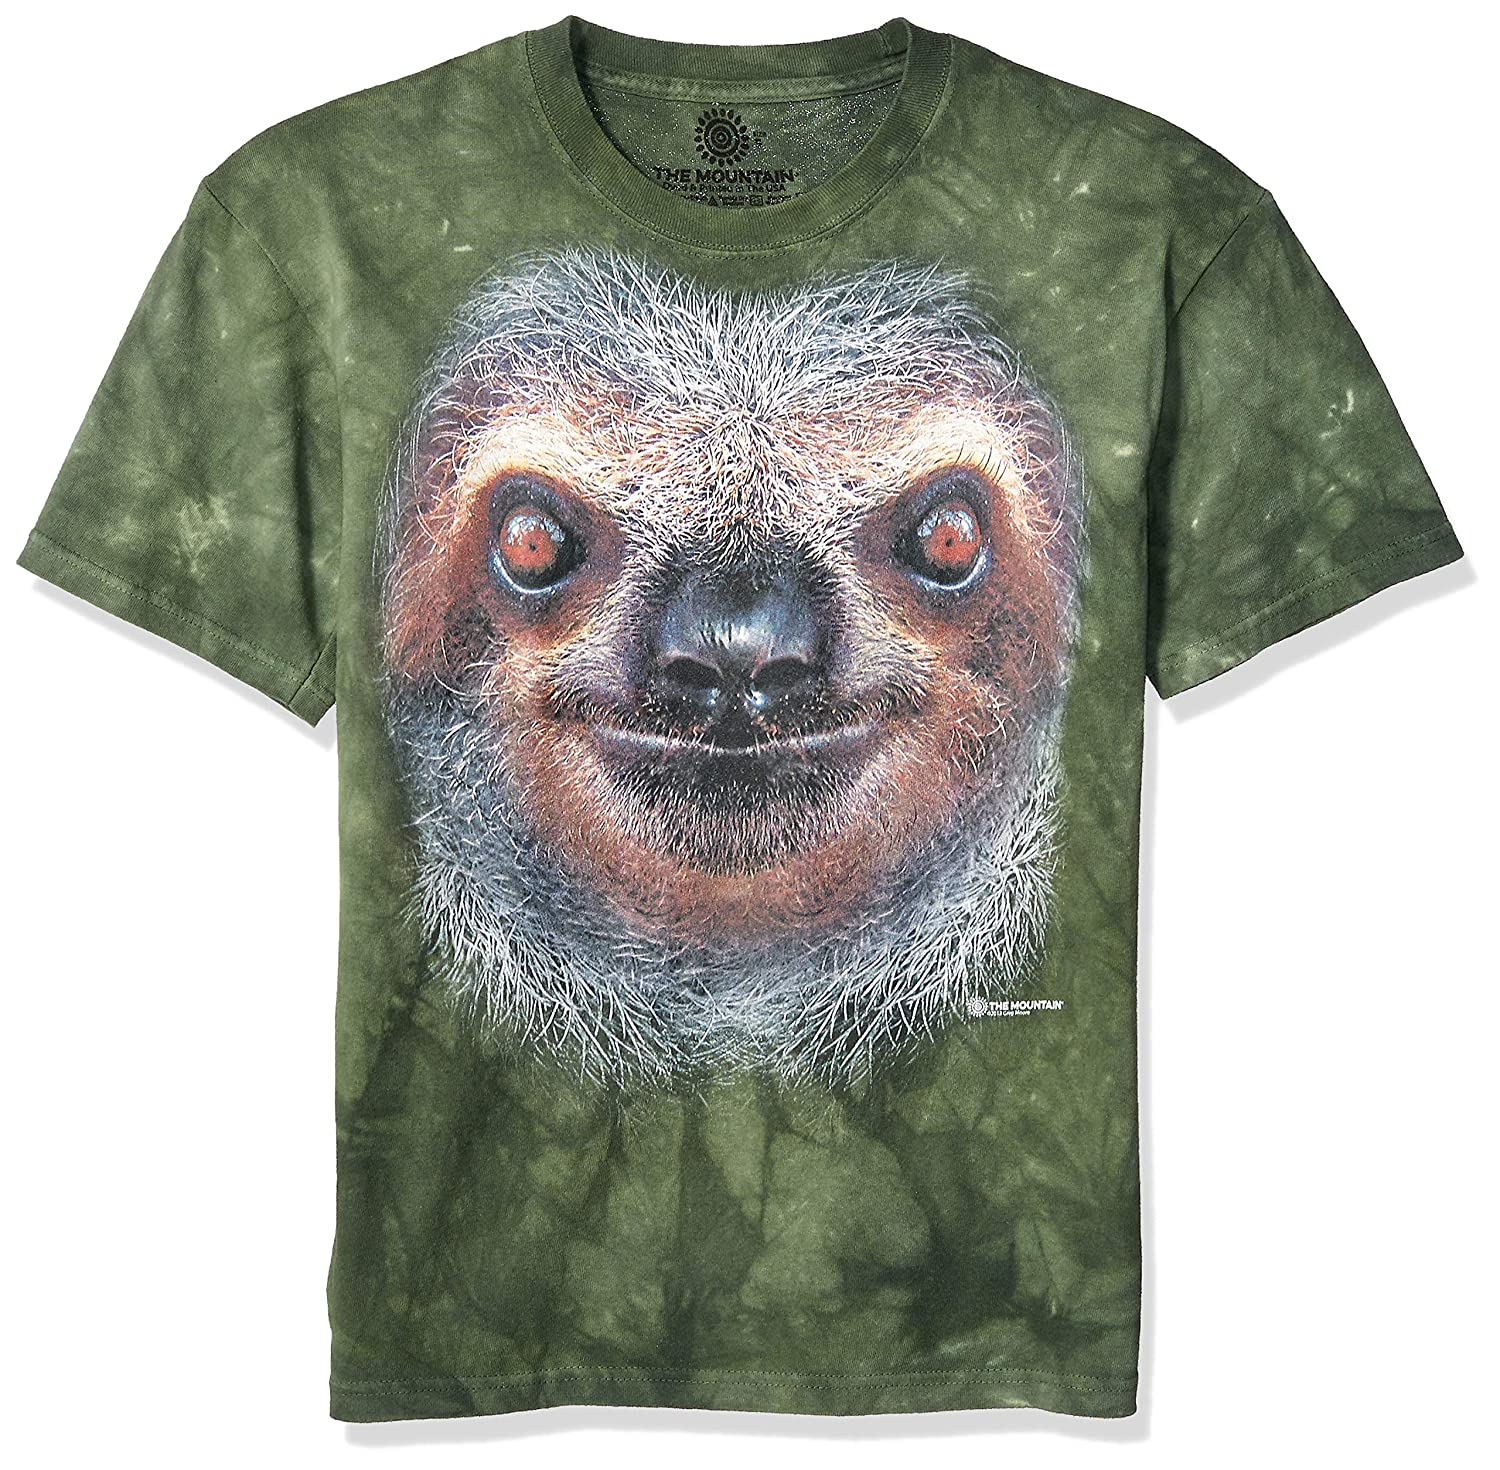 The Mountain Mens Graphic Tee Sloth Face T-shirt Adult Size